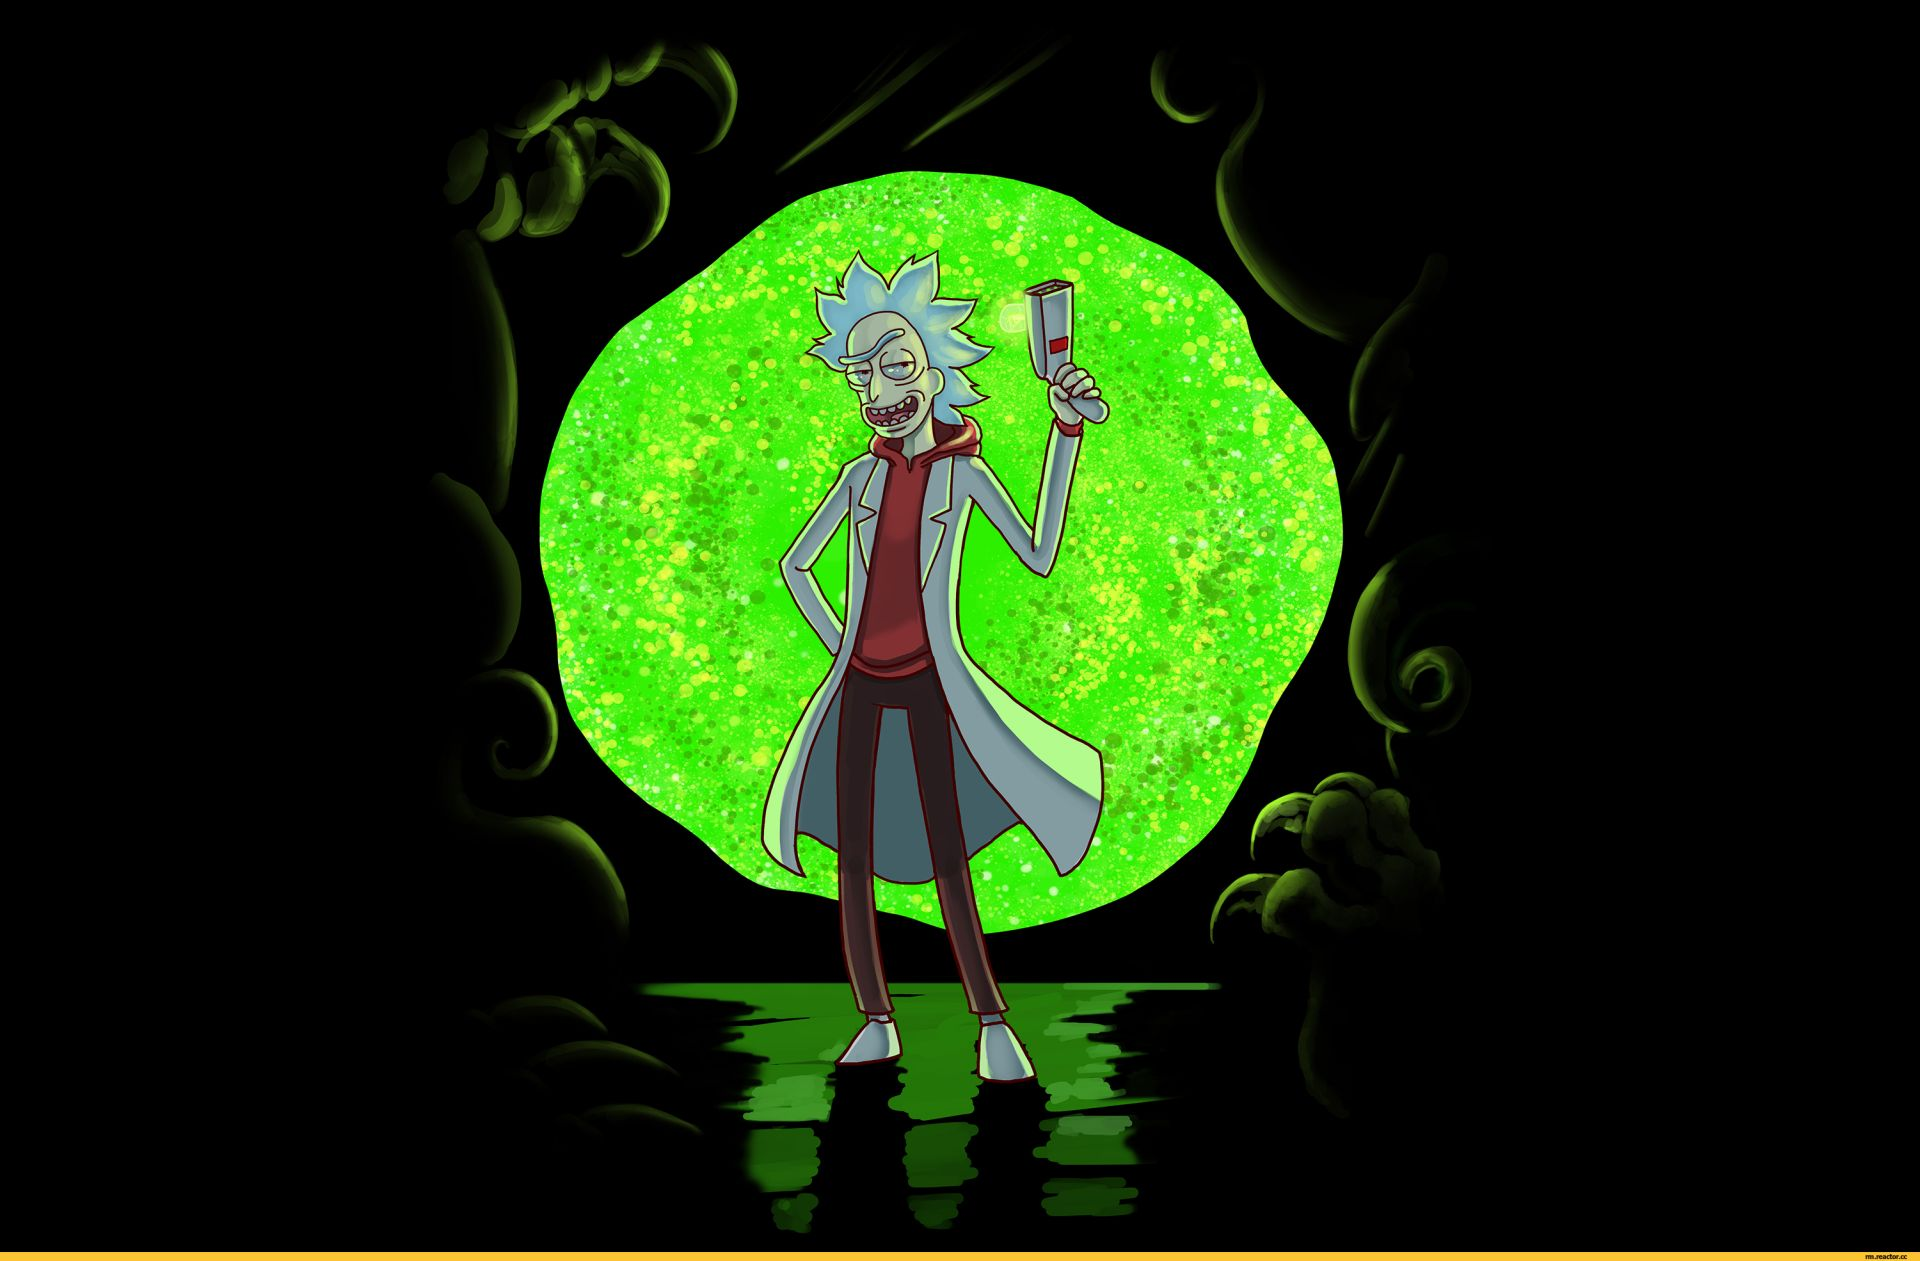 4k Rick Y Morty 1920x1261 Download Hd Wallpaper Wallpapertip